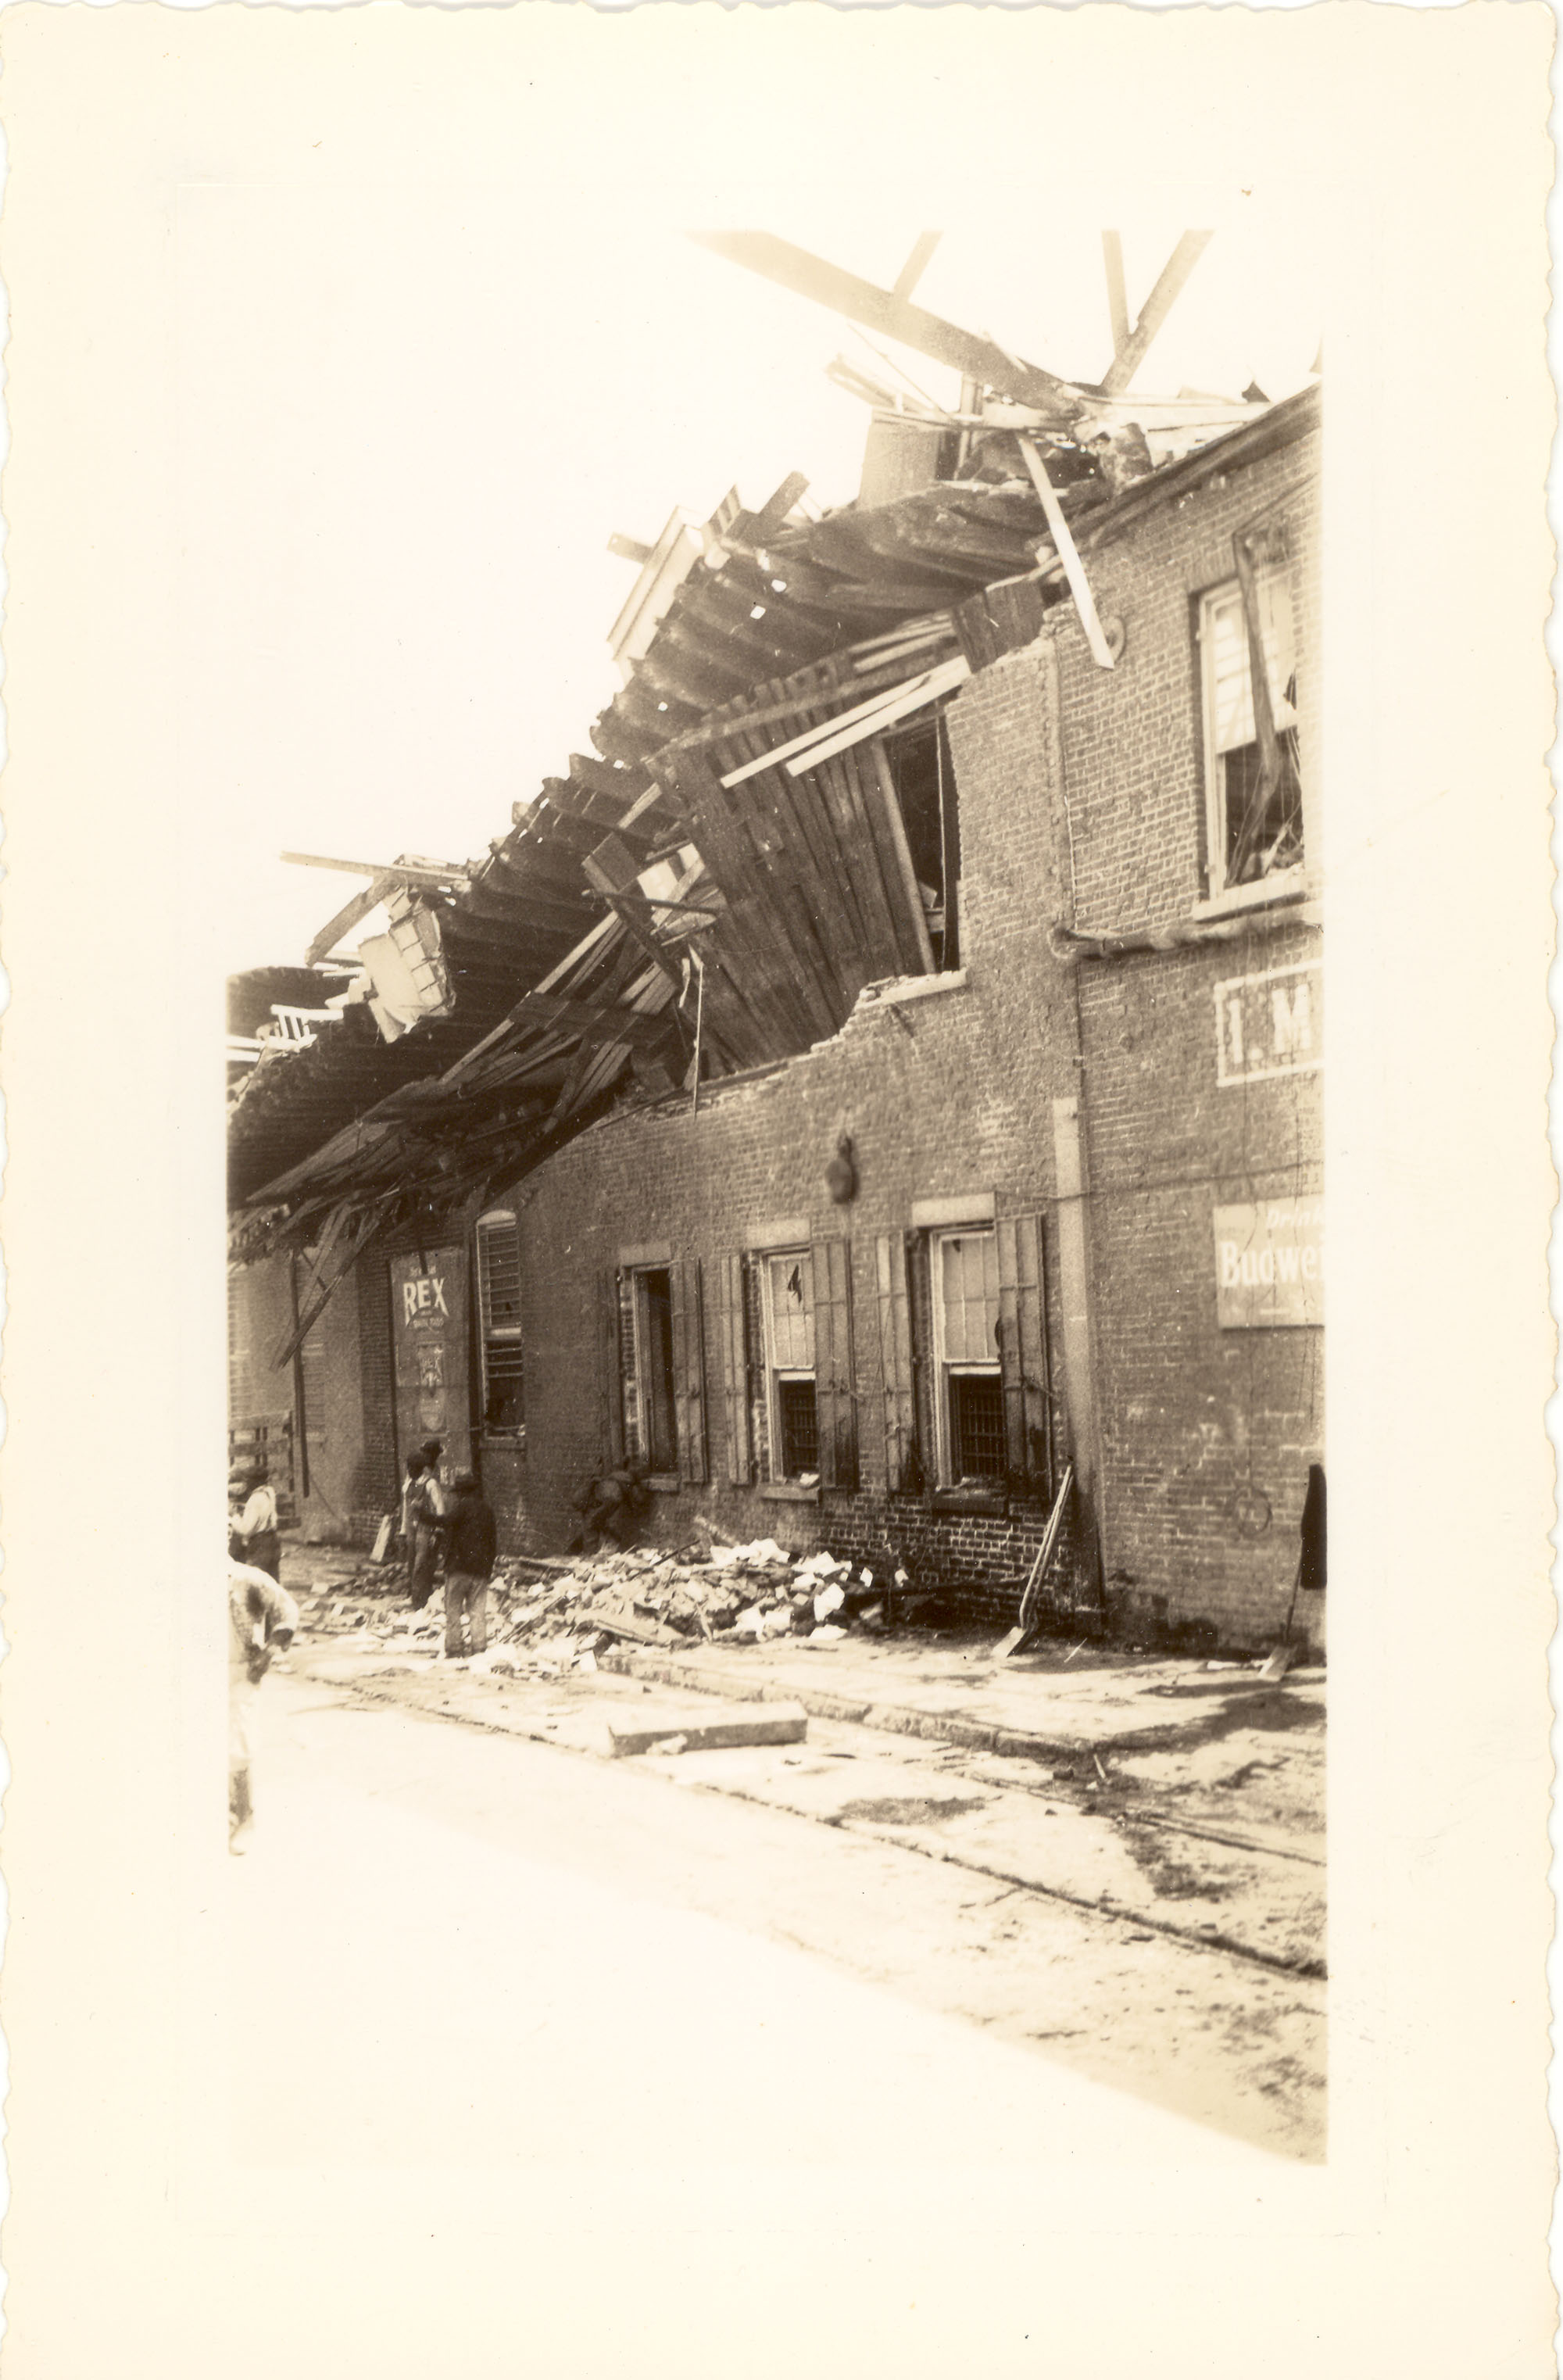 I.M. Pearlstine Building After the 1938 Tornadoes